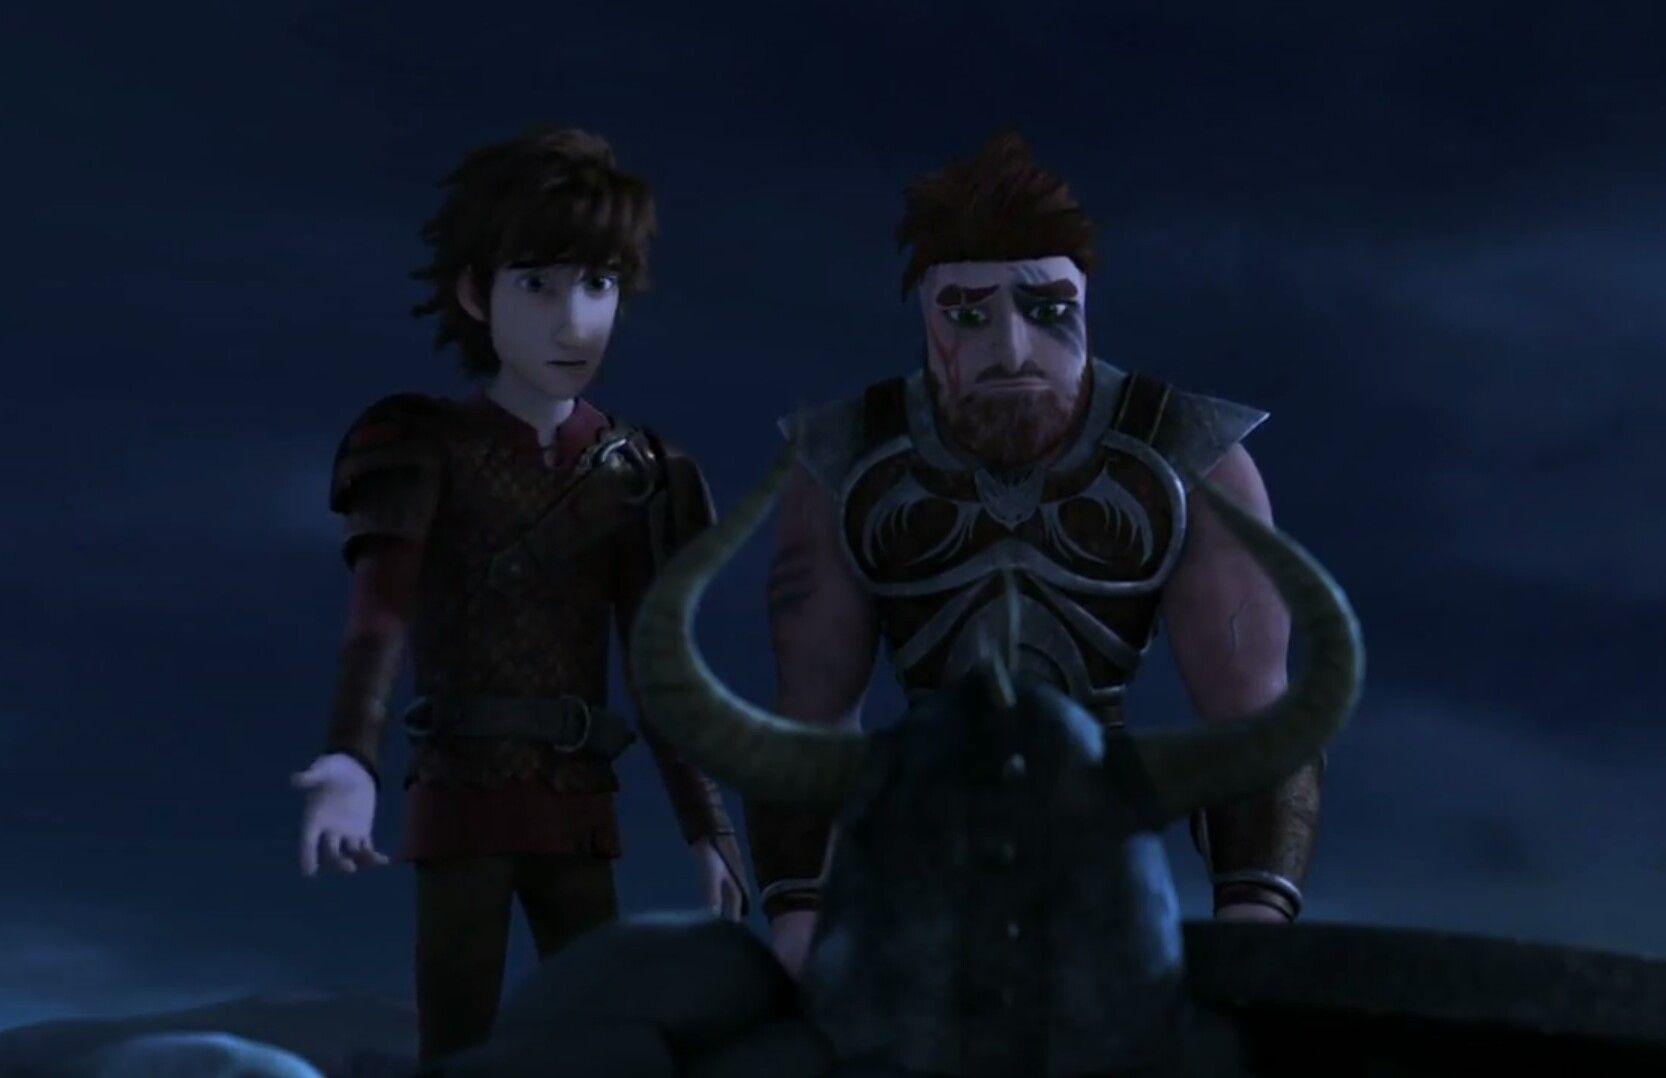 Dagur finds oswald its so sad i want to give him a big hug dagur finds oswald its so sad i want to give him a big hug ccuart Gallery